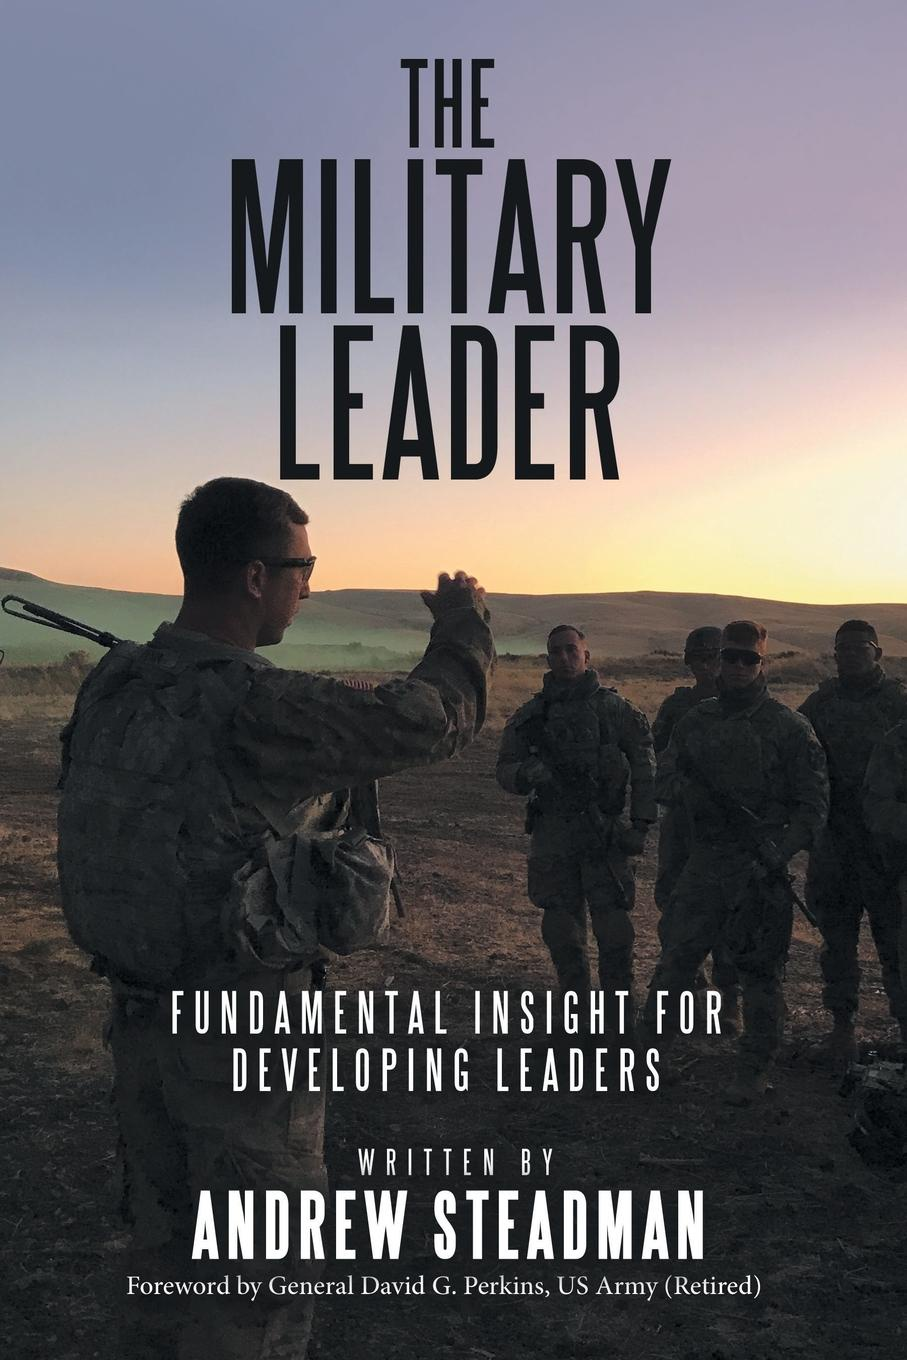 Andrew Steadman The Military Leader. Fundamental Insight for Developing Leaders antoinette oglethorpe grow your geeks a handbook for developing leaders in high tech organisations